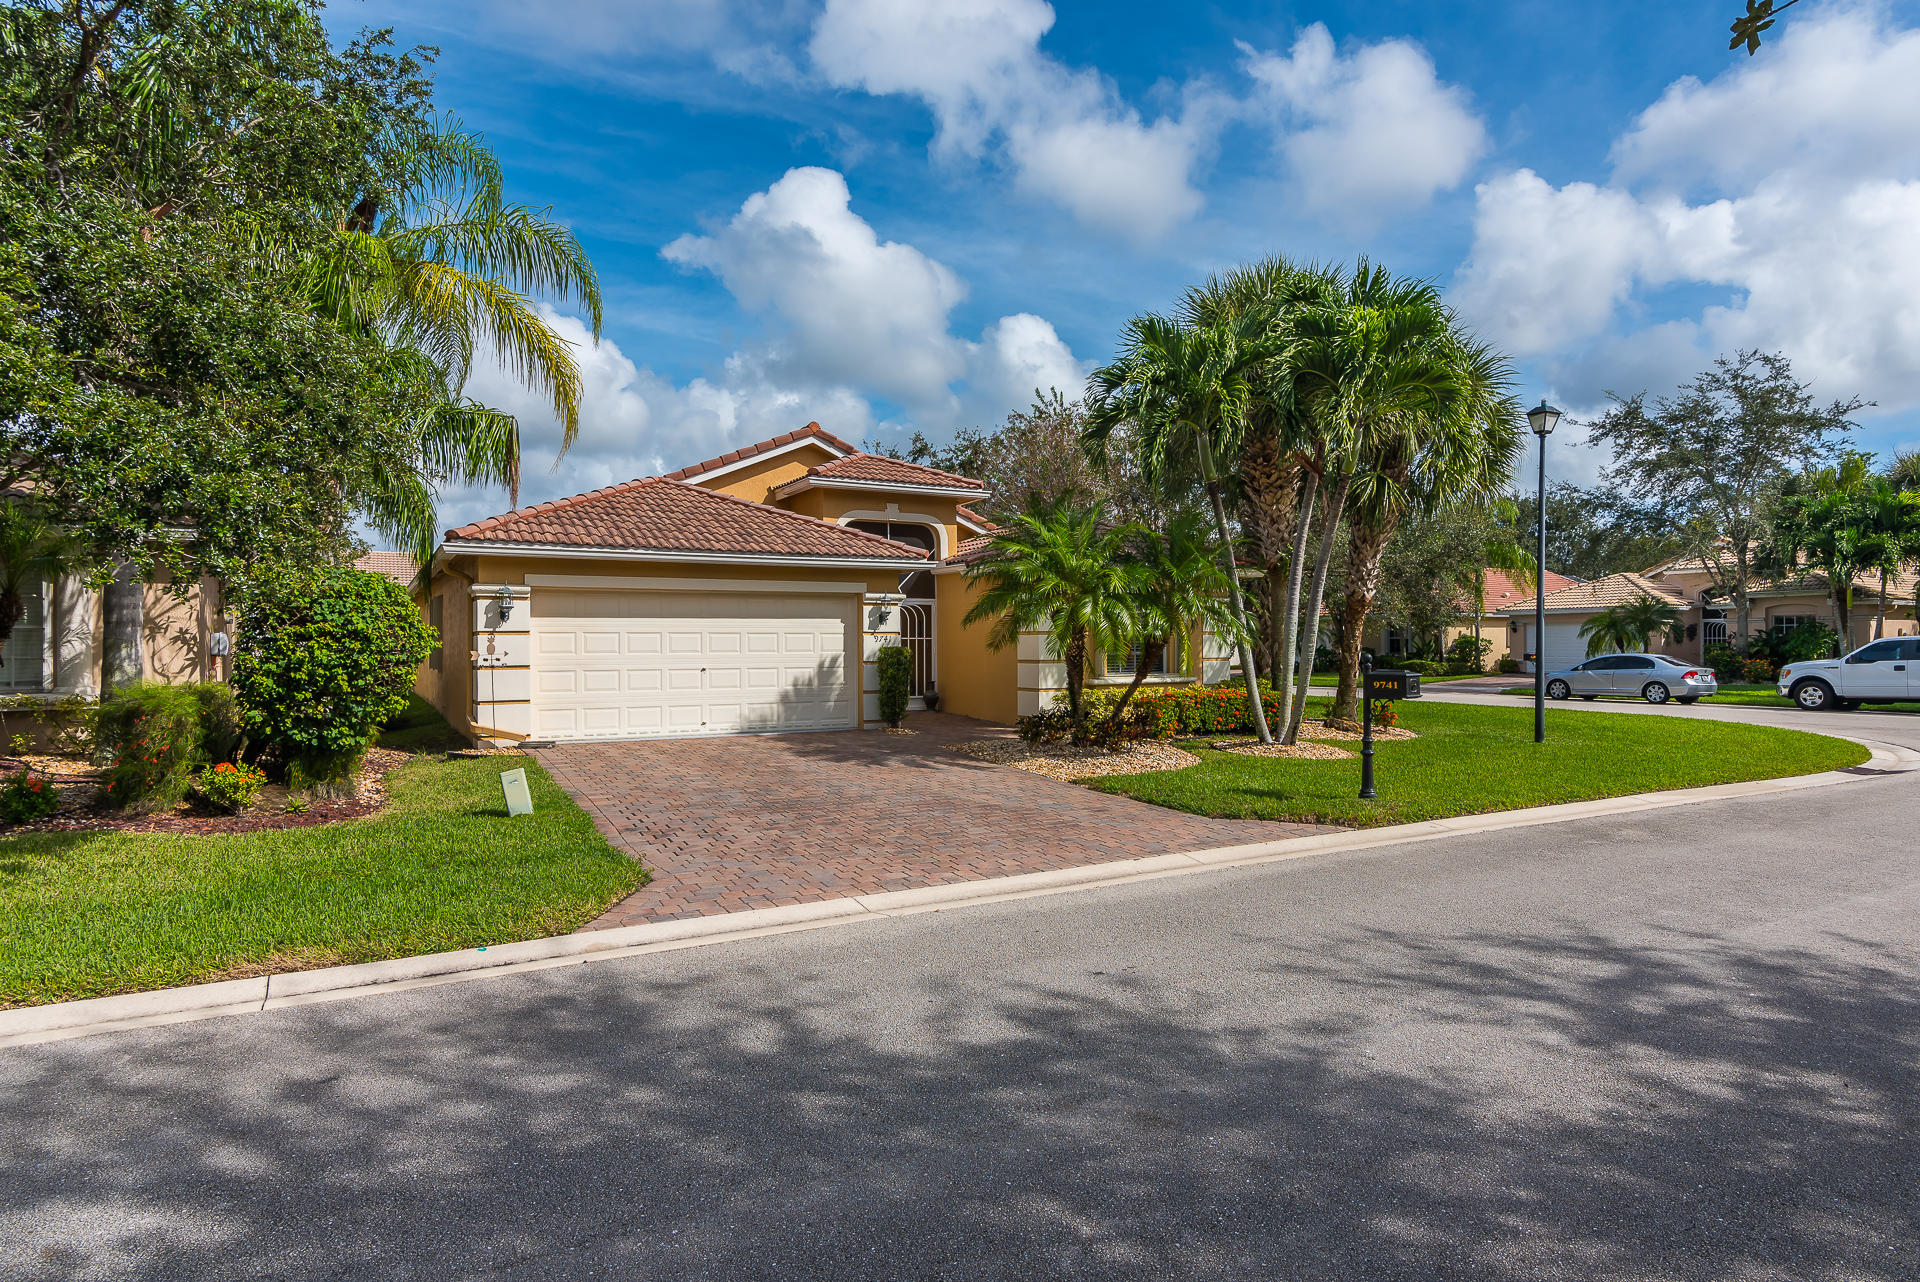 Bellaggio home 9741 Donato Way Lake Worth FL 33467